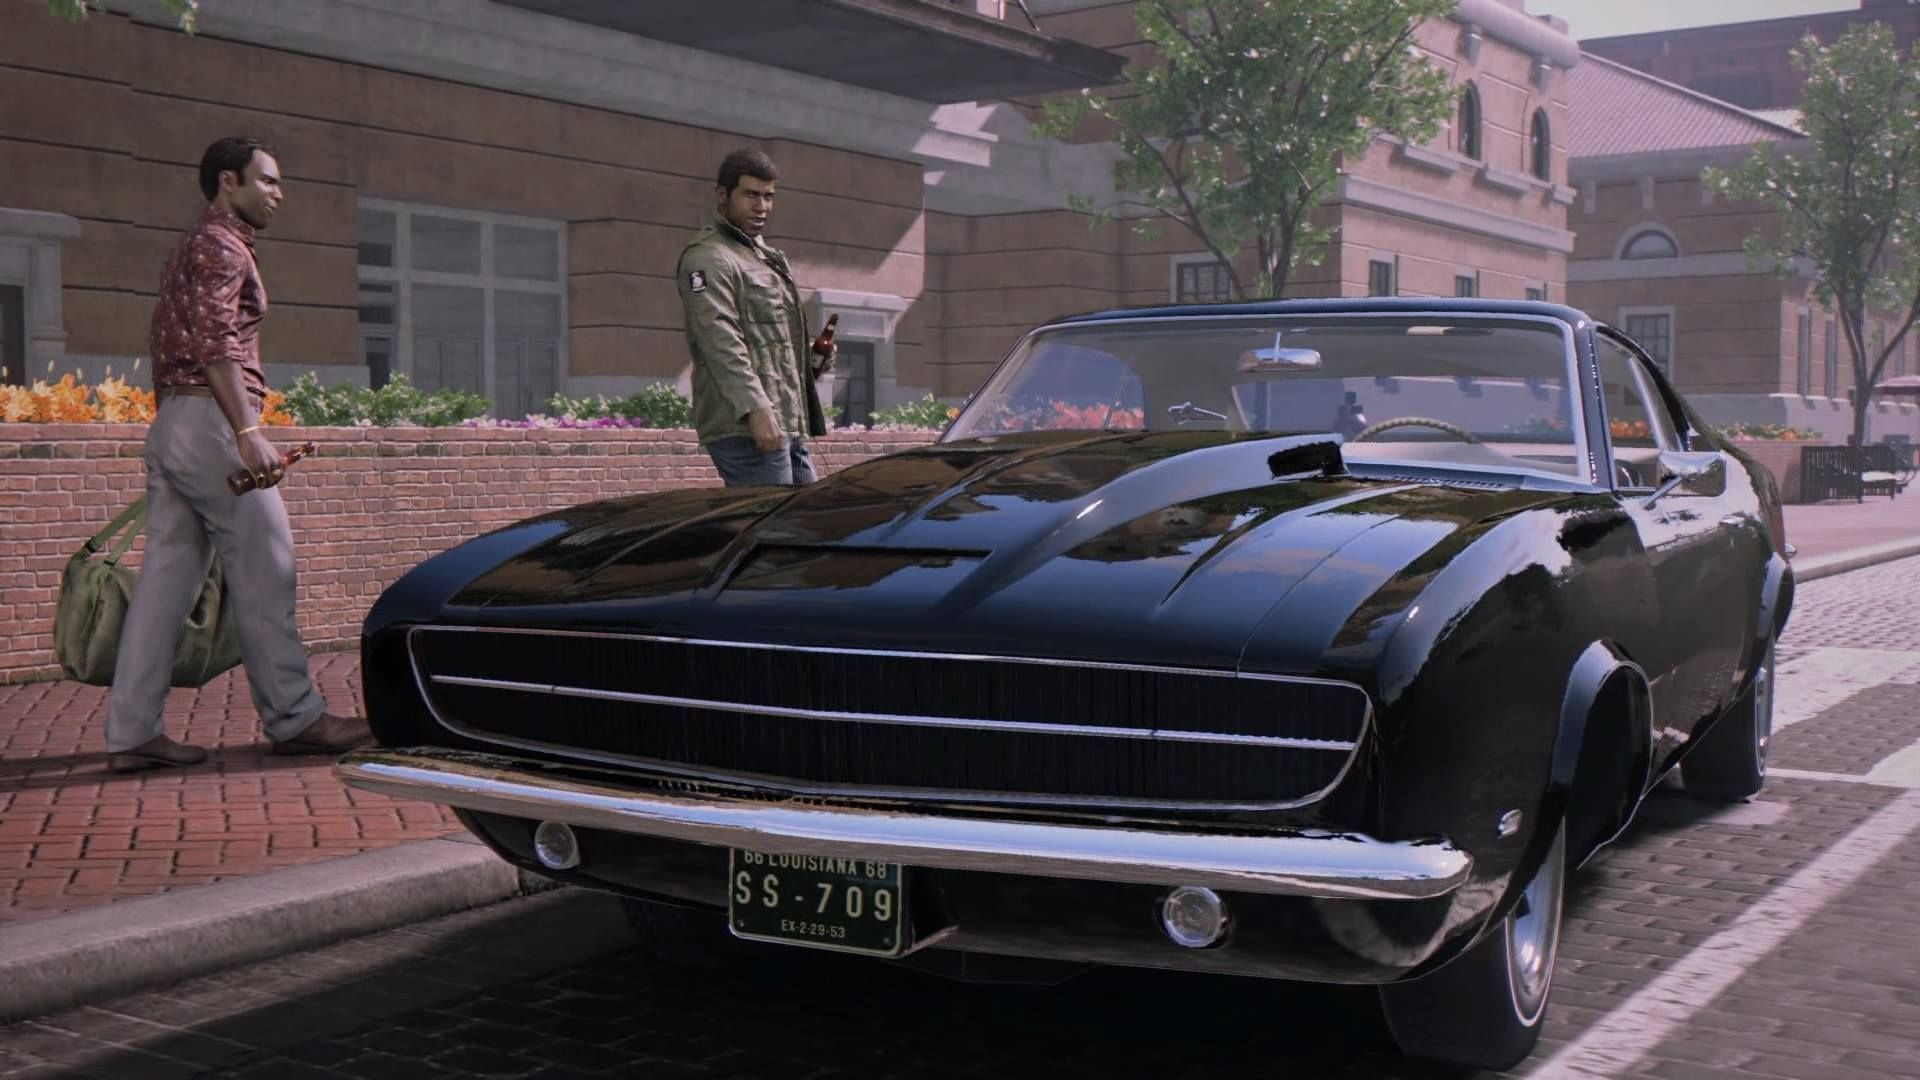 Lincoln Clay Y Ellis Robinson Mafia Iii Mafia 3 Ps4 Share Pc